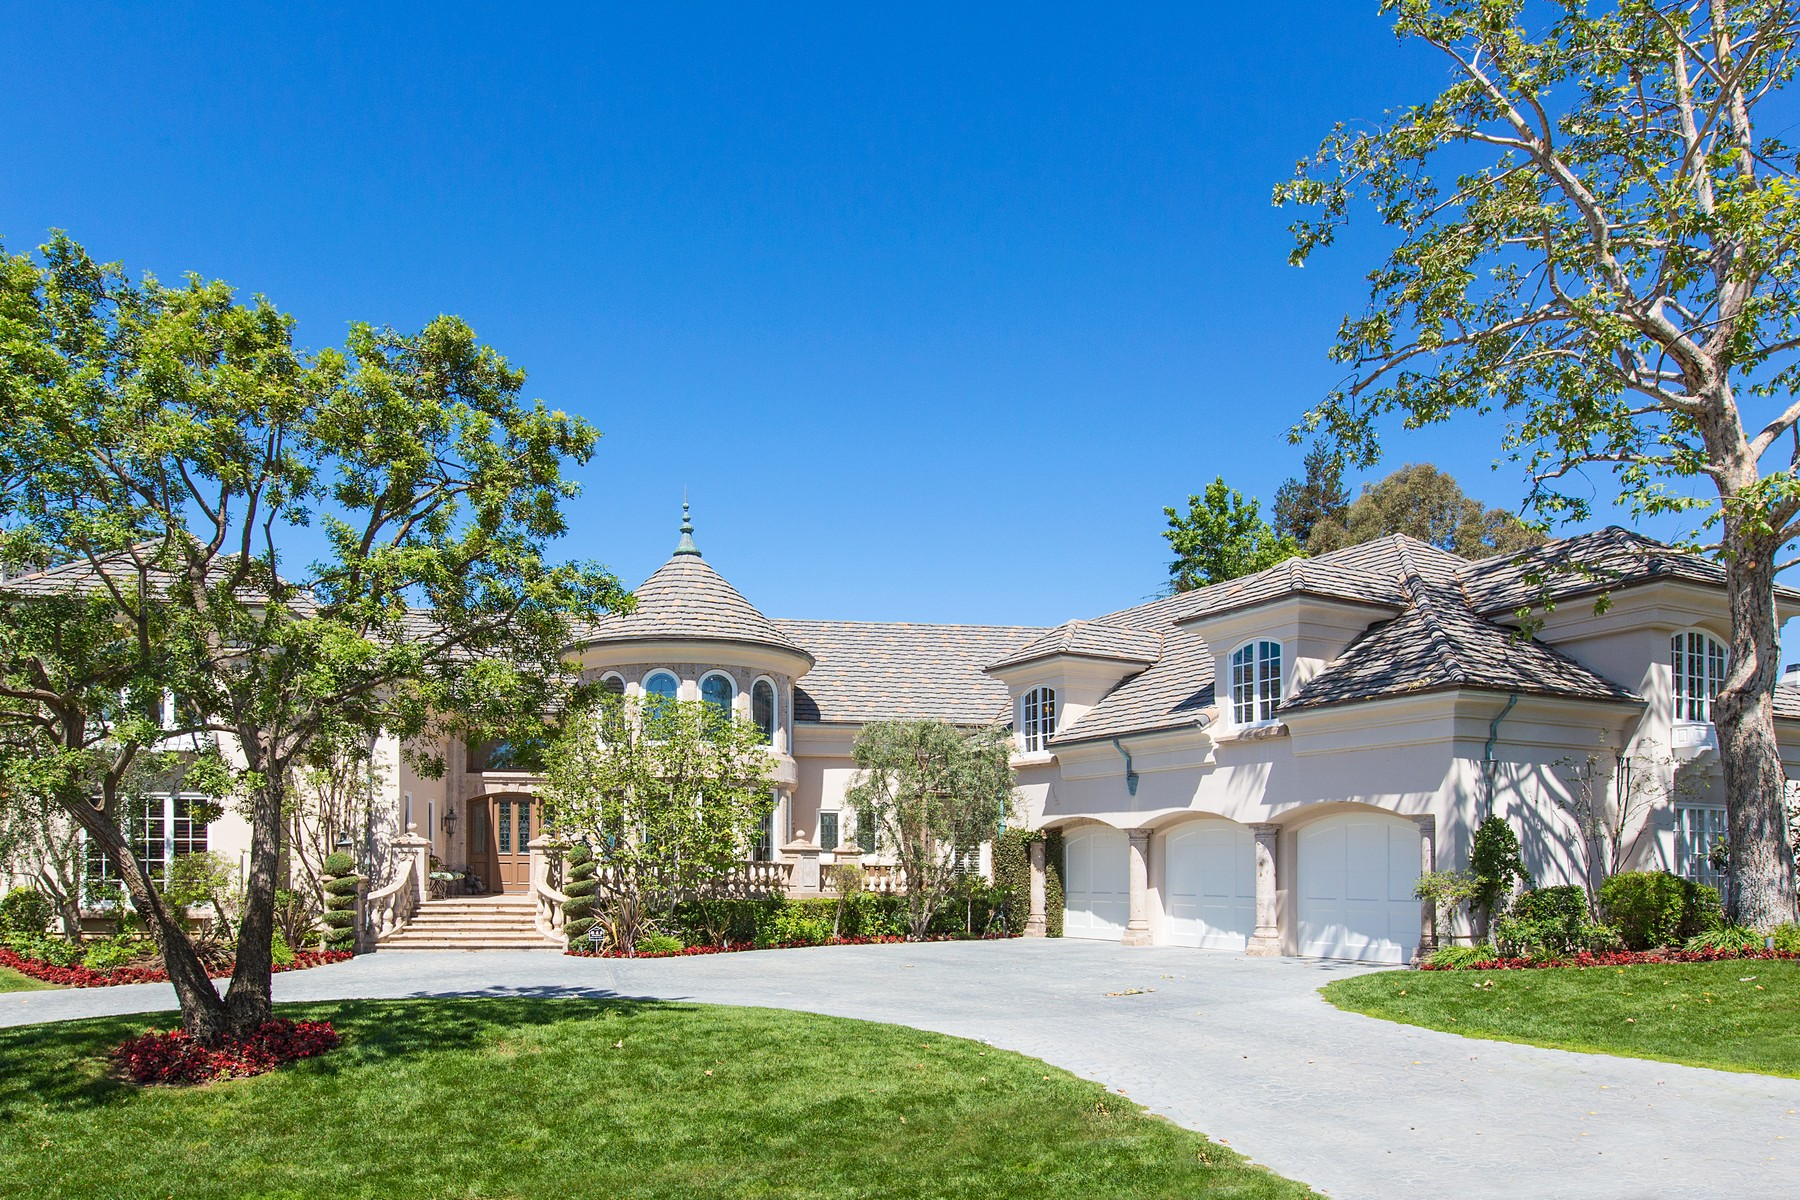 Single Family Home for Sale at Summit View Drive 4916 Summit View Drive Westlake Village, California, 91362 United States